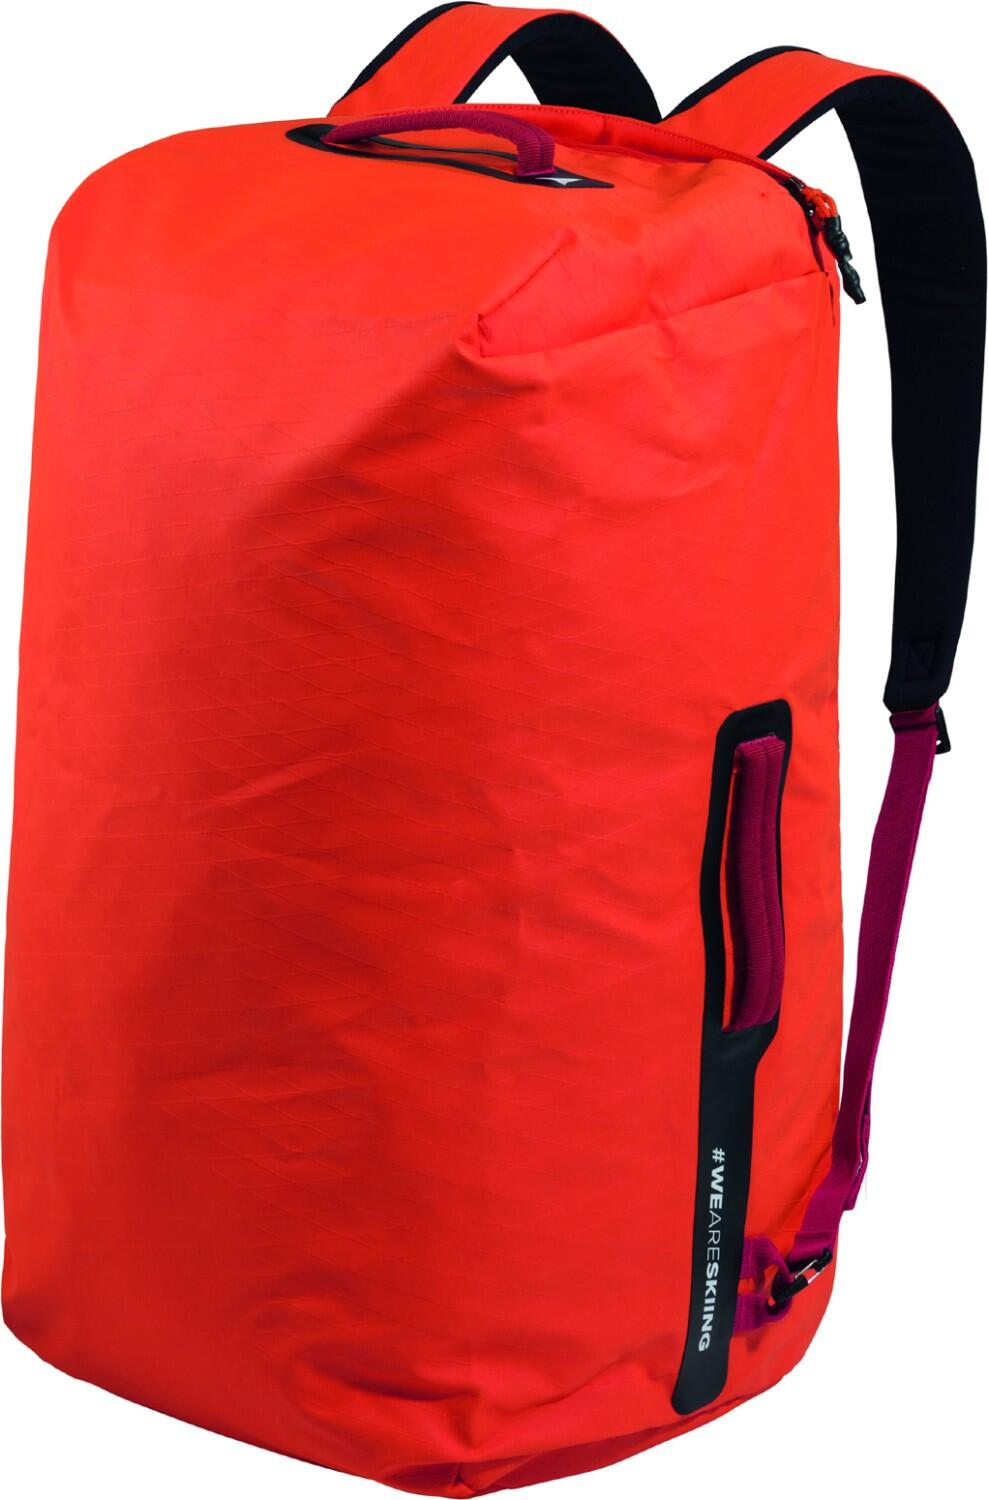 atomic-duffle-bag-60-tasche-farbe-bright-red-